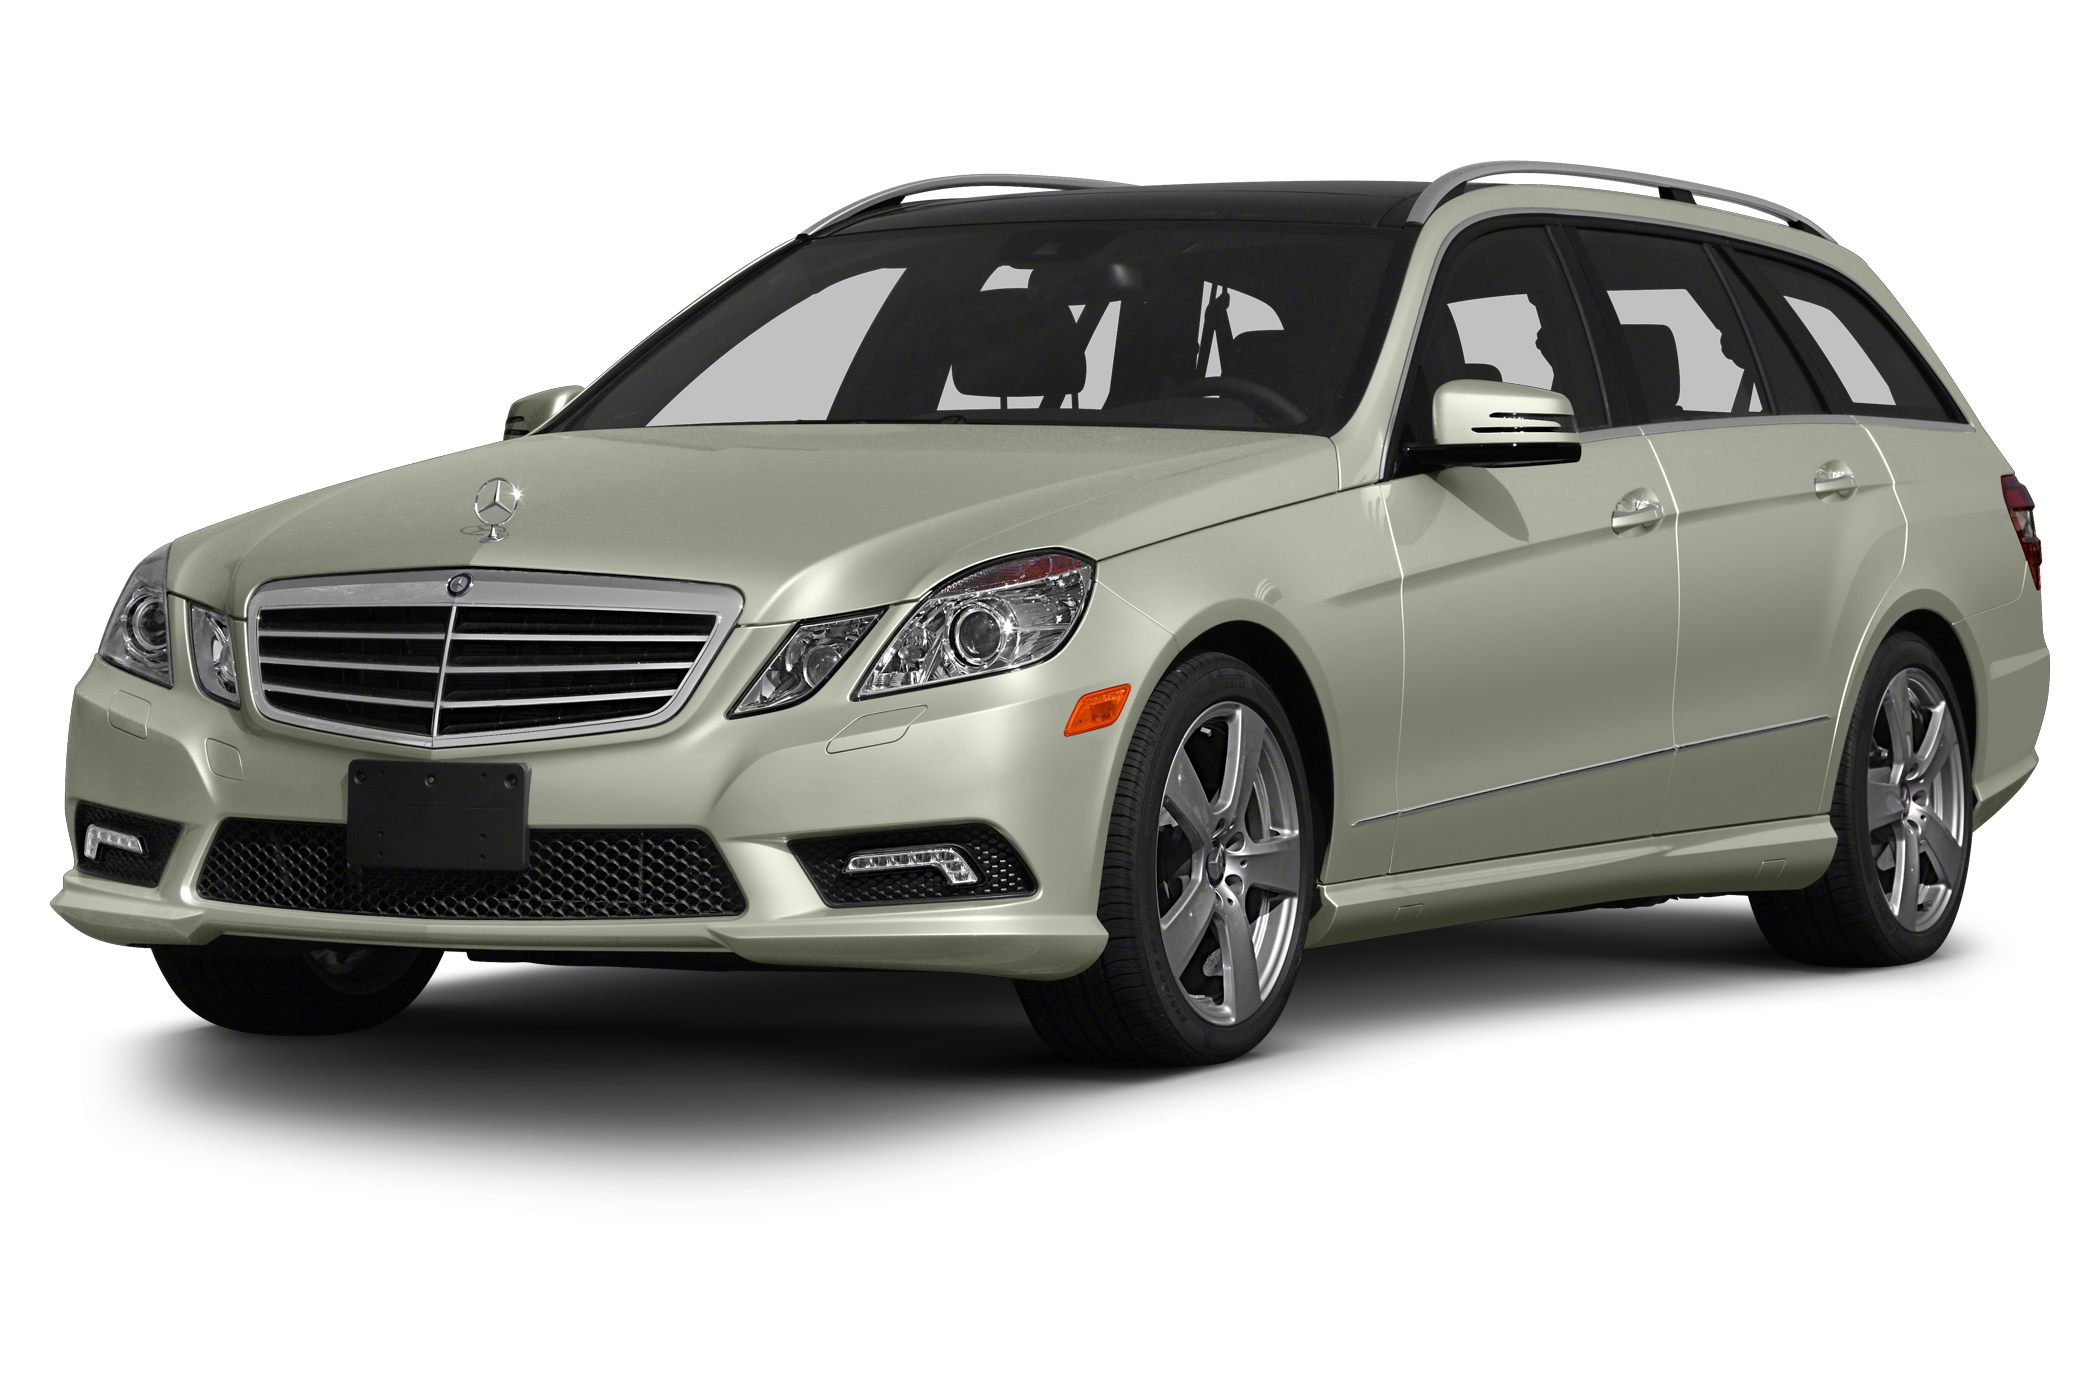 2013 Mercedes-Benz E-Class E350 4MATIC Sedan for sale in Snellville for $38,990 with 9,491 miles